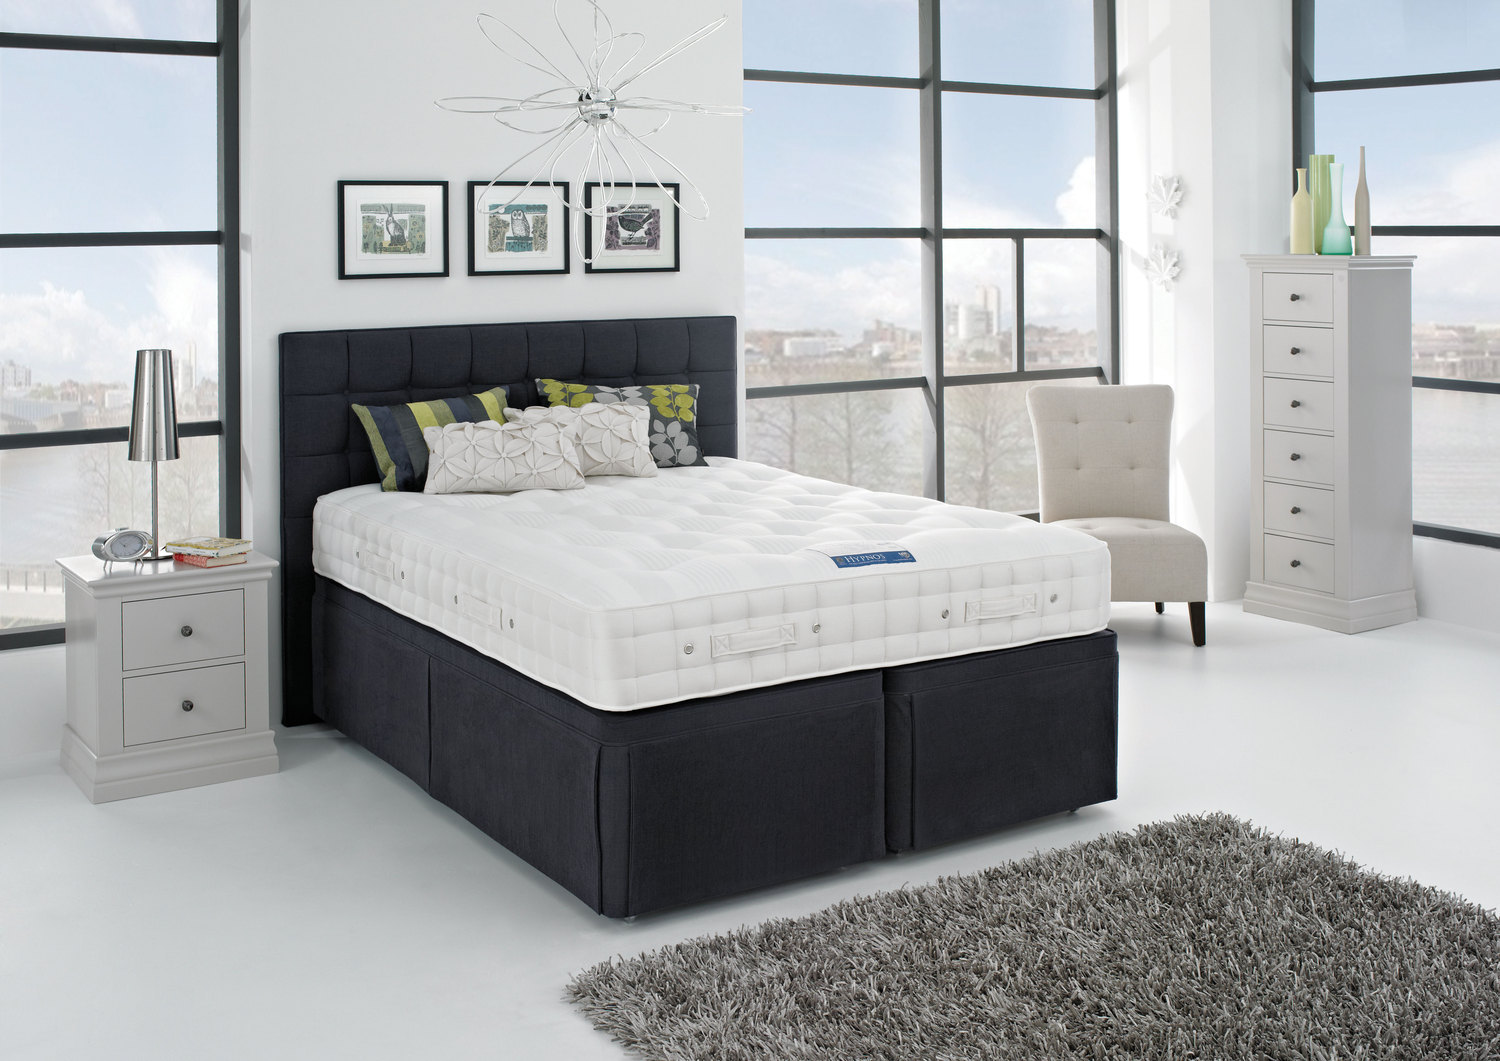 Hypnos Orthocare 10 Mattress Firm From Slumberslumber Com